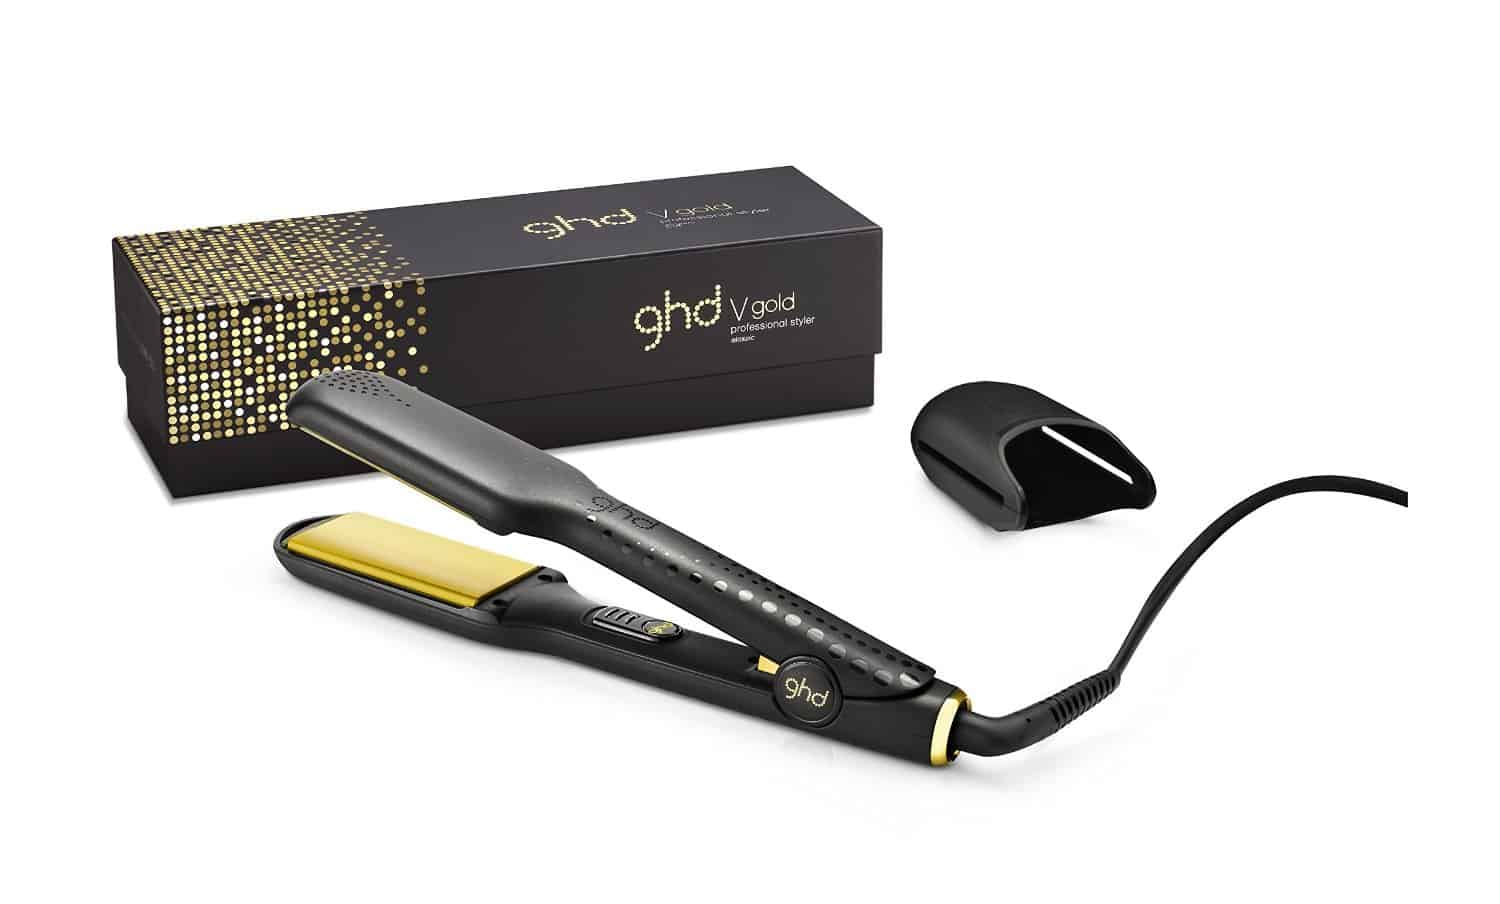 Best hair straighteners for curling hair ghd v gold classic